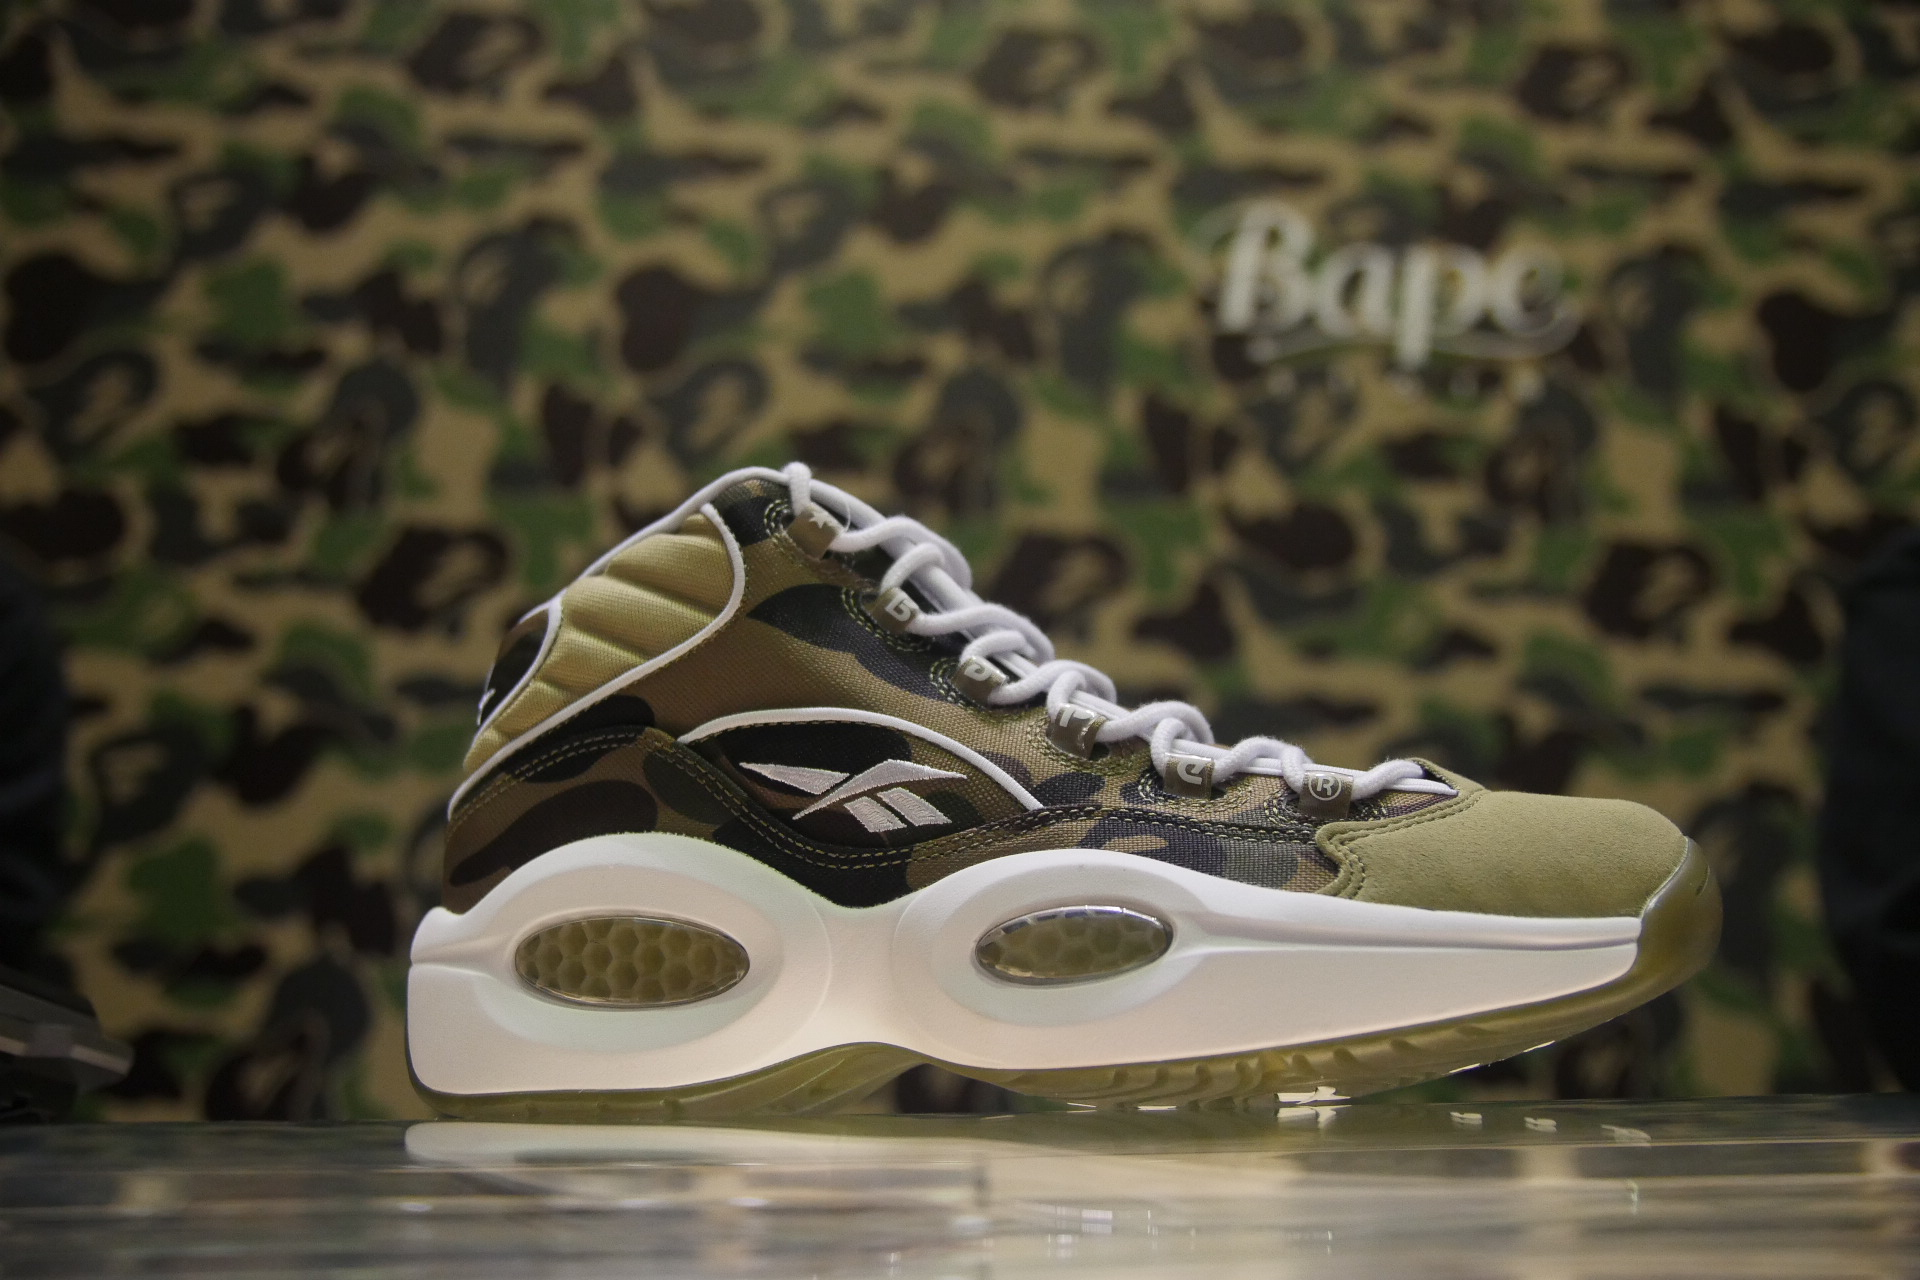 52d564984 Reebok Question x mita sneakers x BAPE Pictorial & Release Details ...